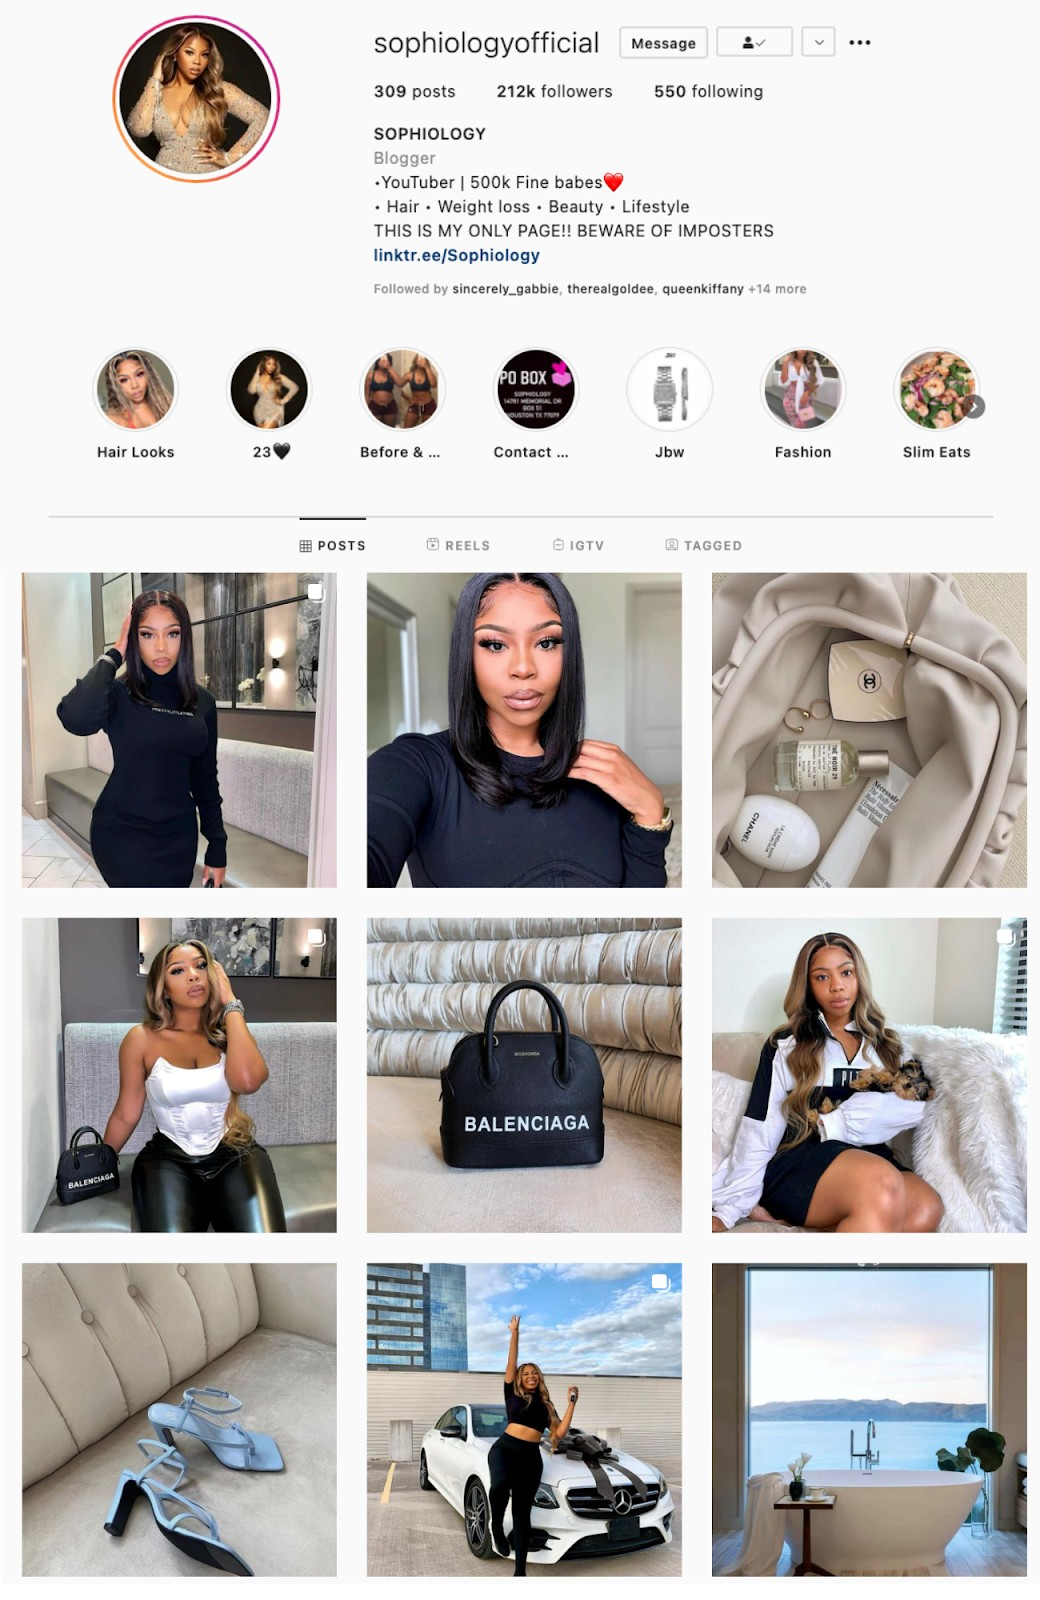 Transition Instagram Theme Example